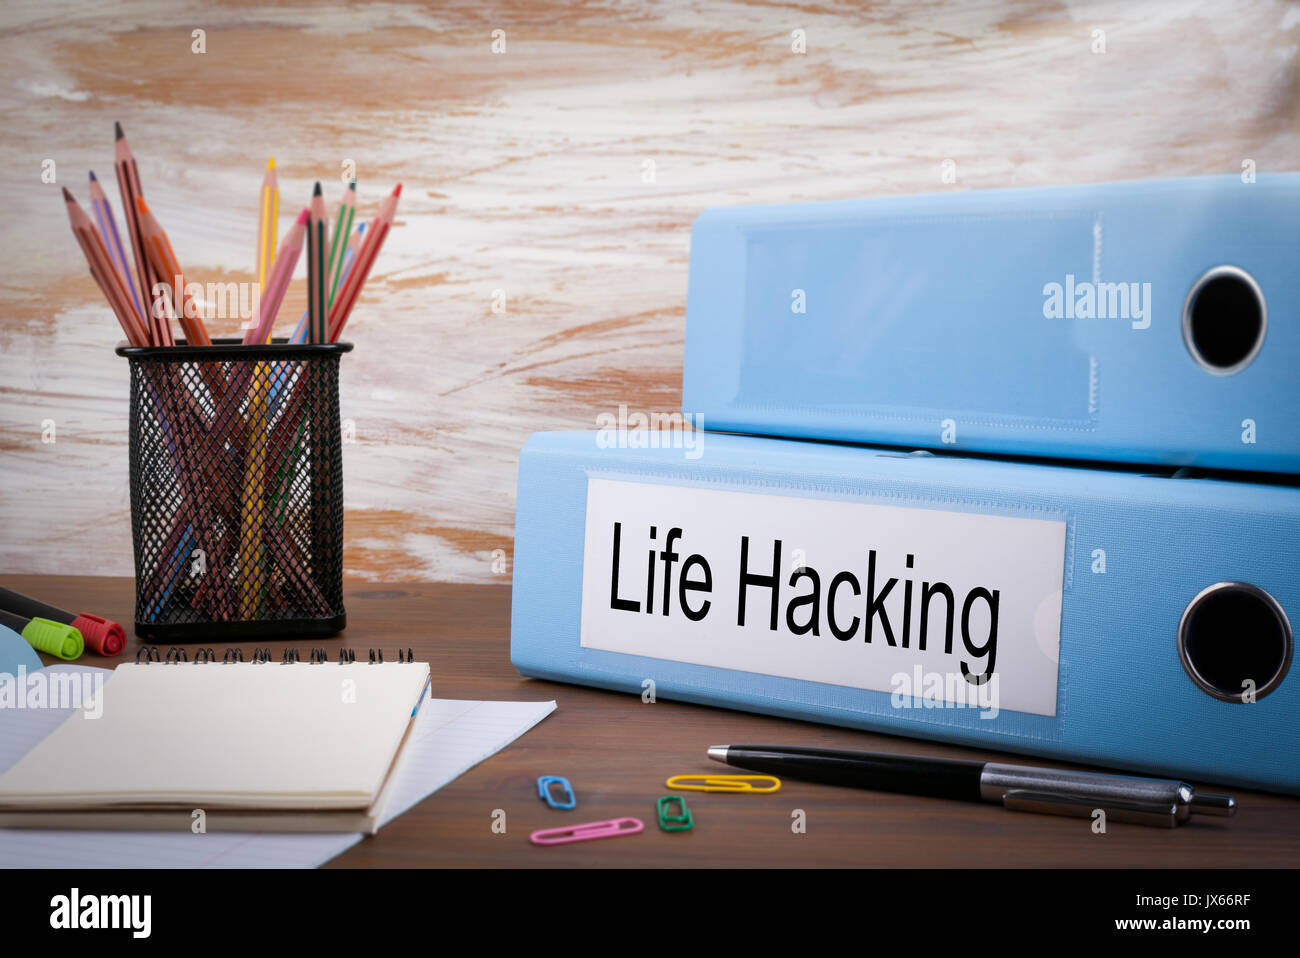 Life Hacking, Office Binder on Wooden Desk. On the table colored pencils, pen, notebook paper. - Stock Image